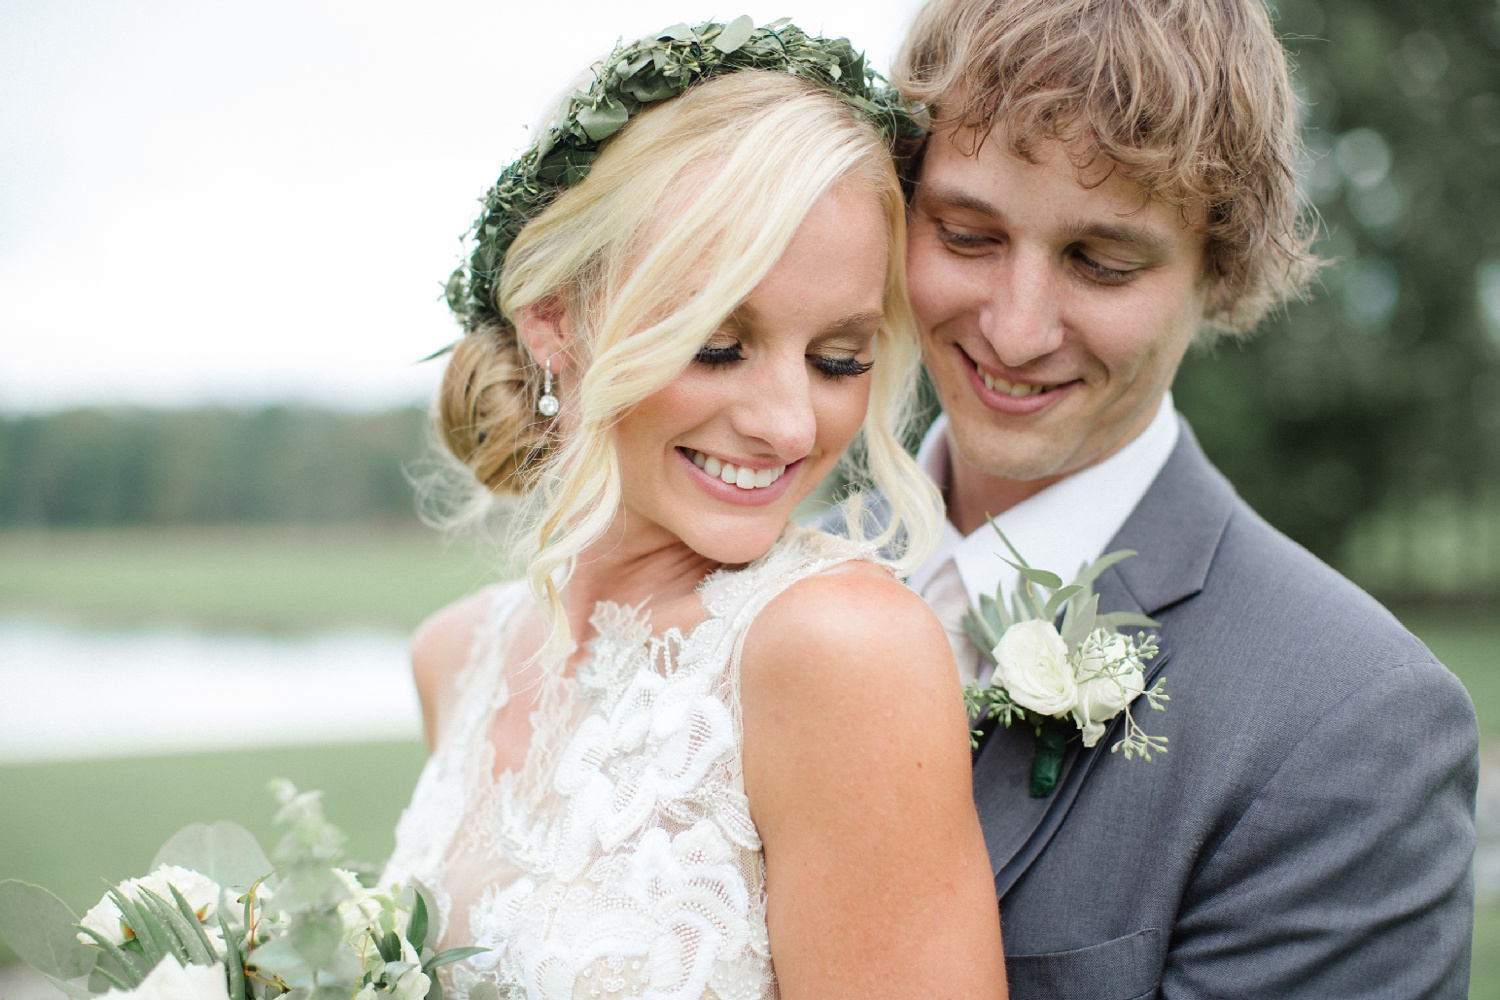 A Barn at Glistening Pond wedding photographed by Jordan DeNike Photography